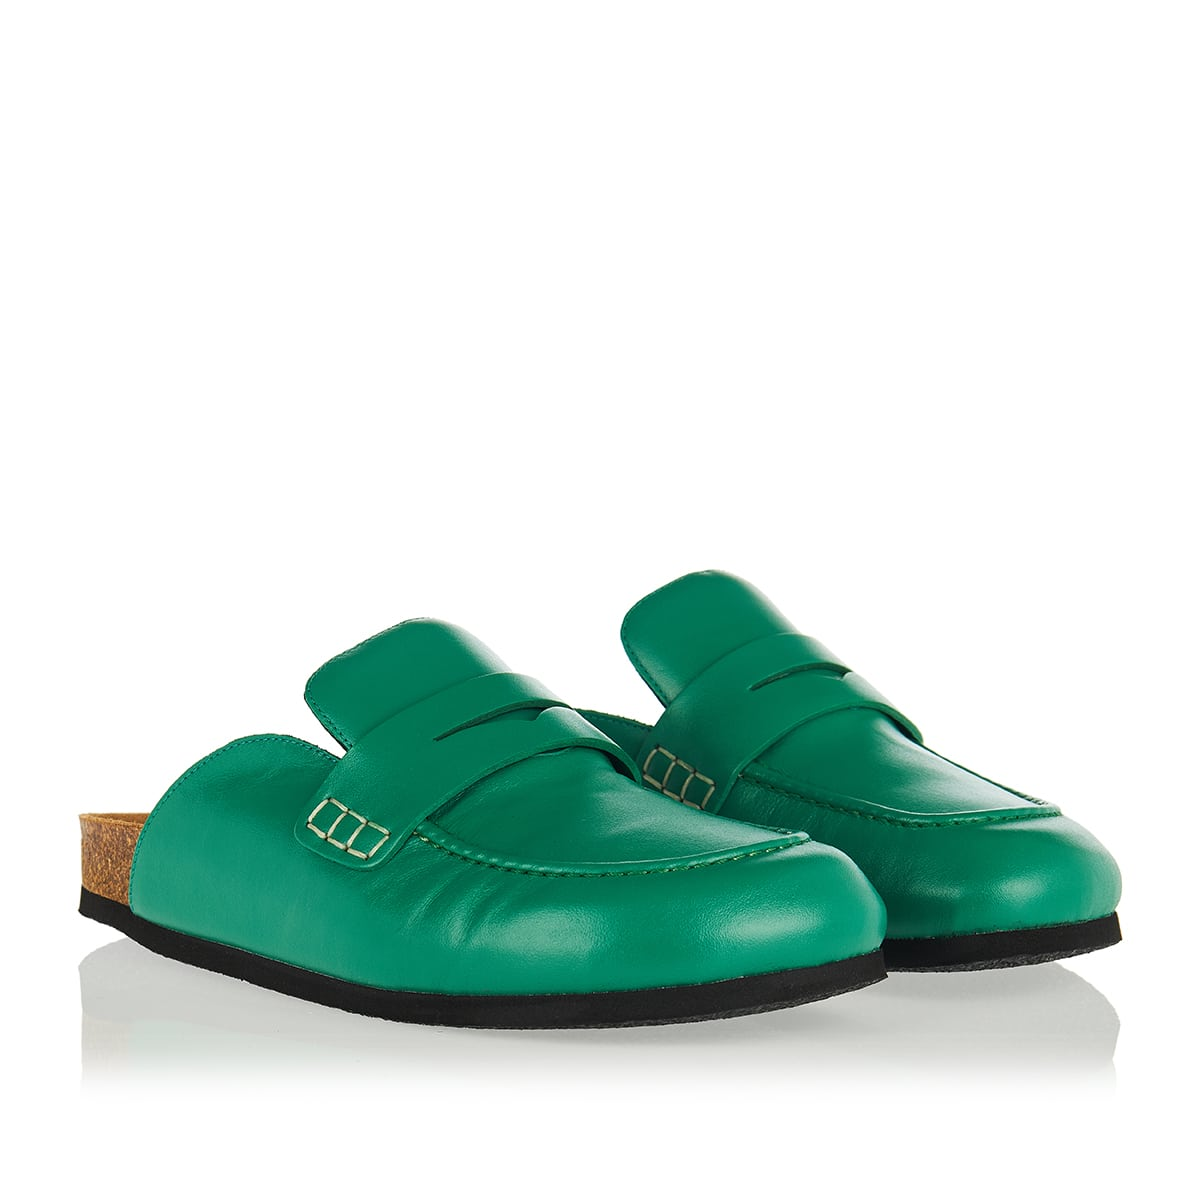 Slide-in leather loafers